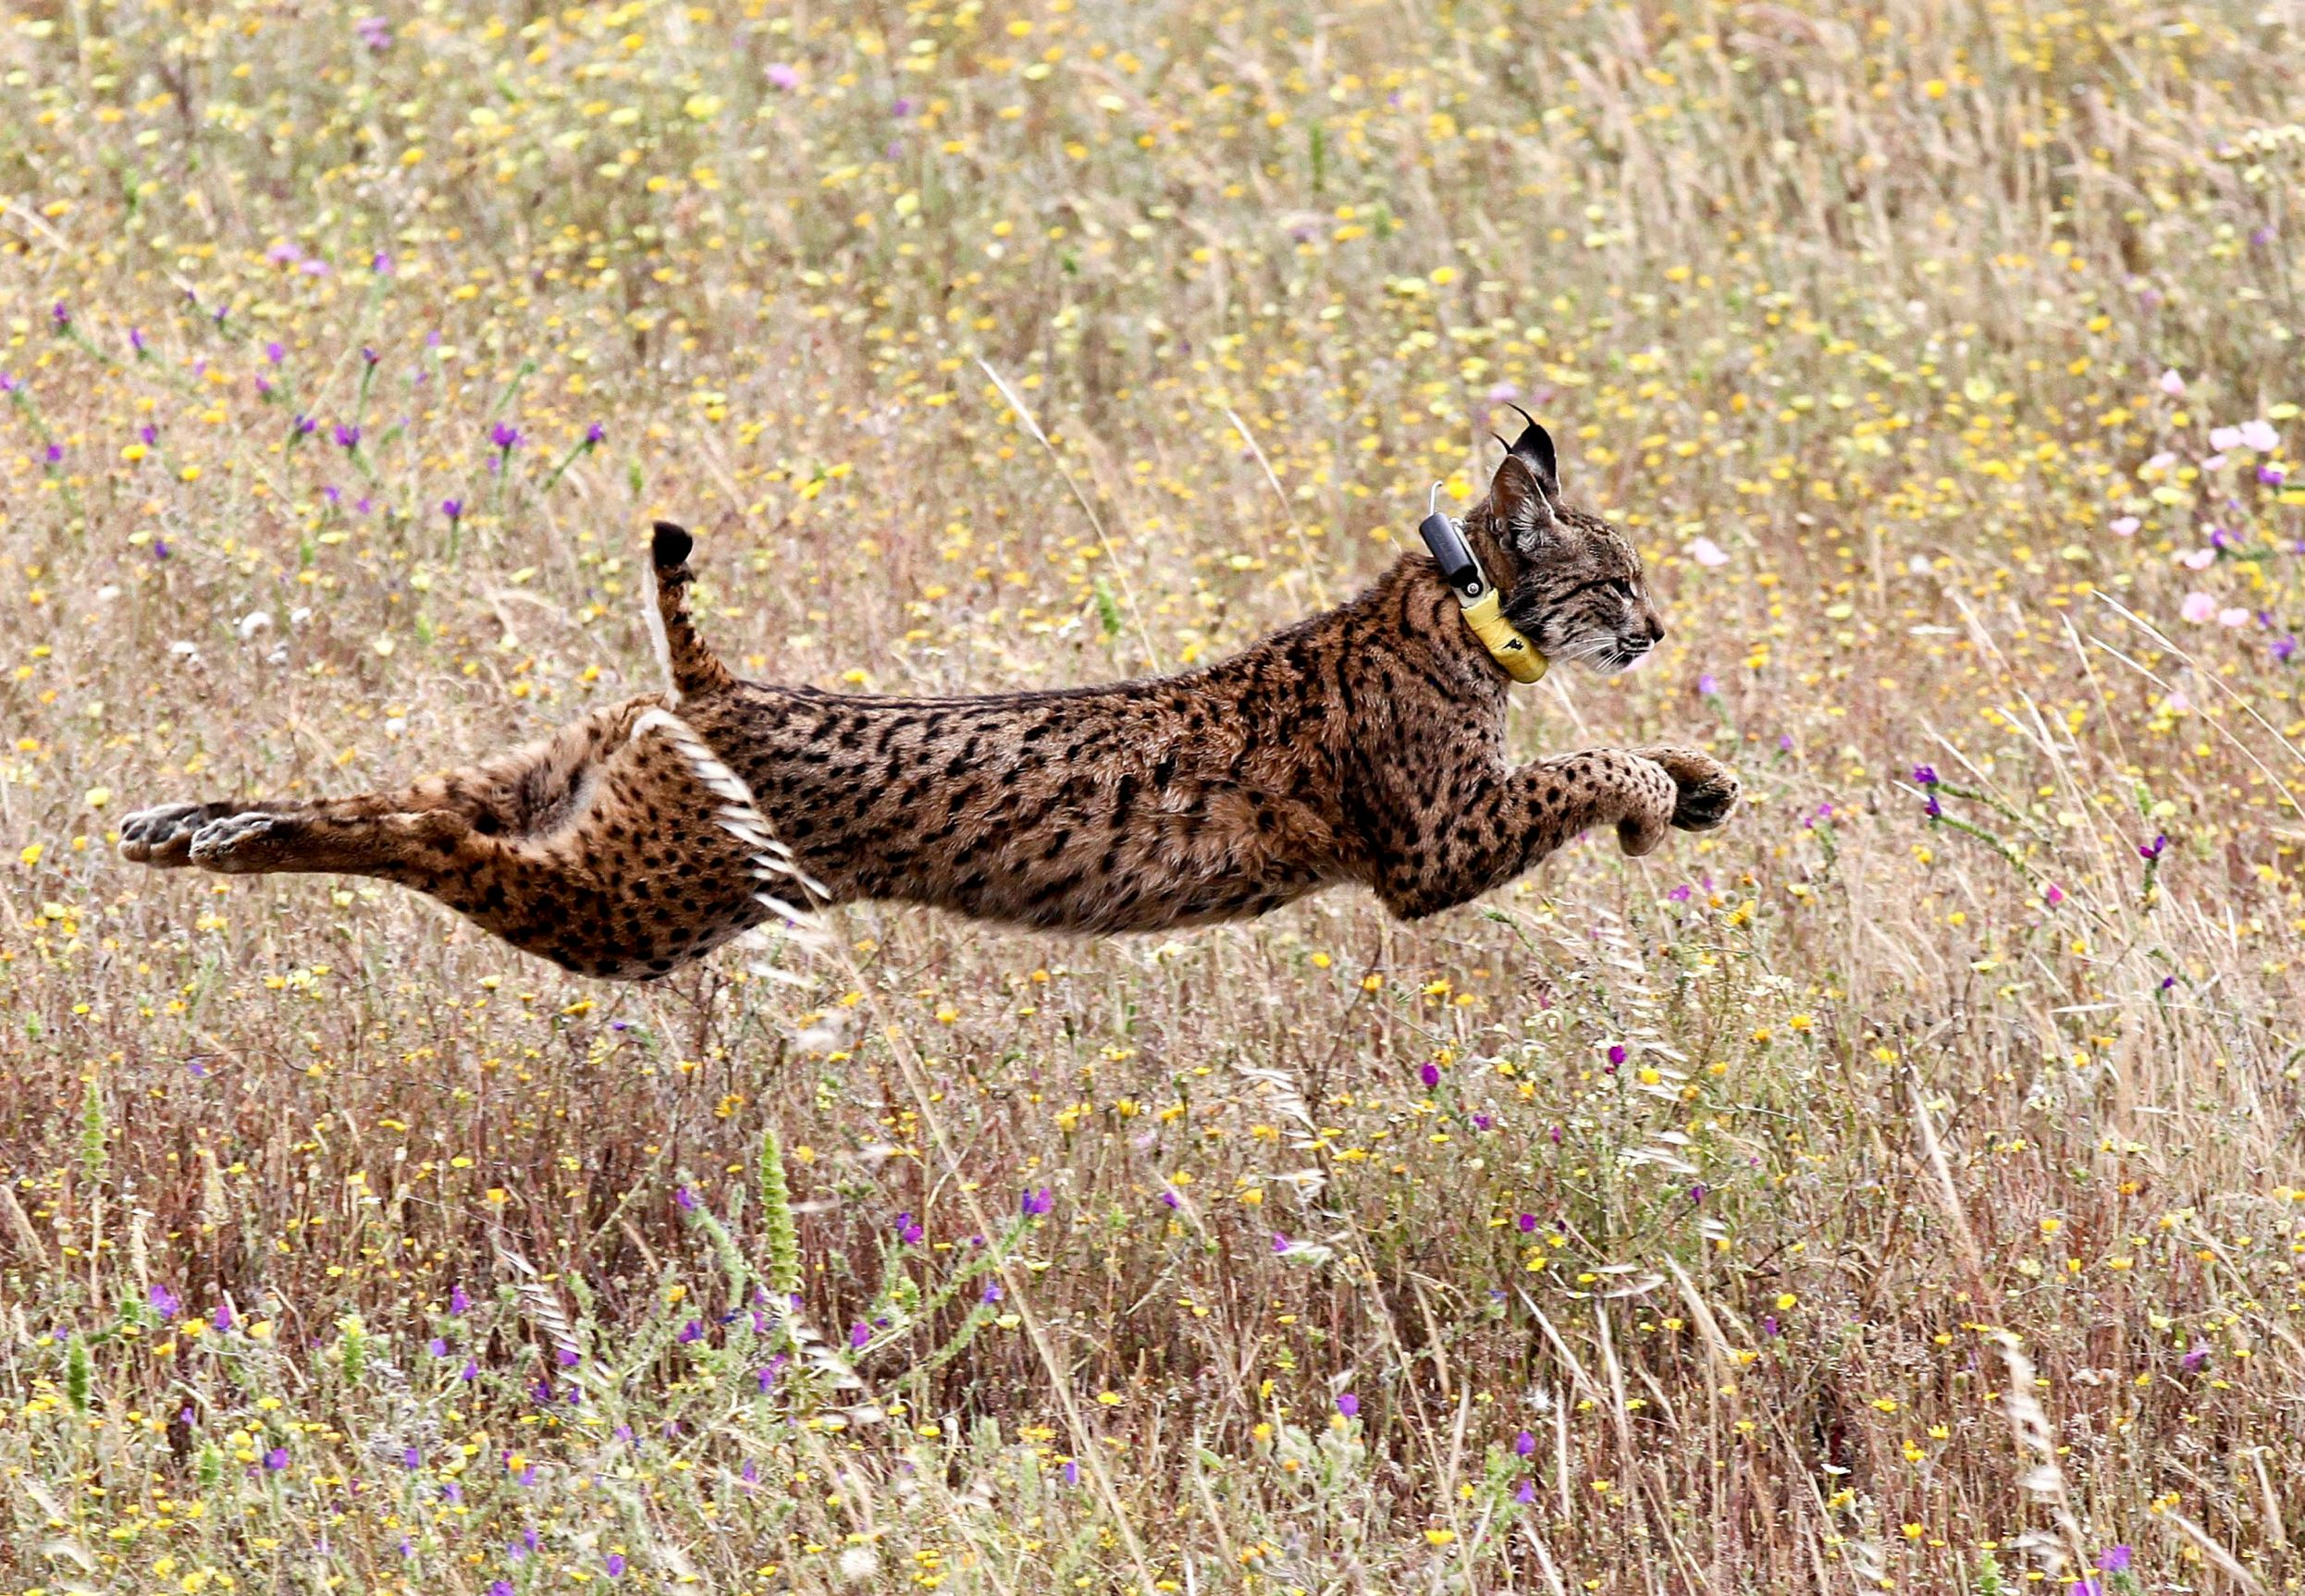 Слайд 33 из 67: Iberian lynx 'Mistral' jumps in a field after being released by Portugal's Minister of Environment Joao Matos Fernandes (unseen) and others in the Mount Milhouro (Herdade da Cela) region in Mertola, Portugal, 13 May 2016.